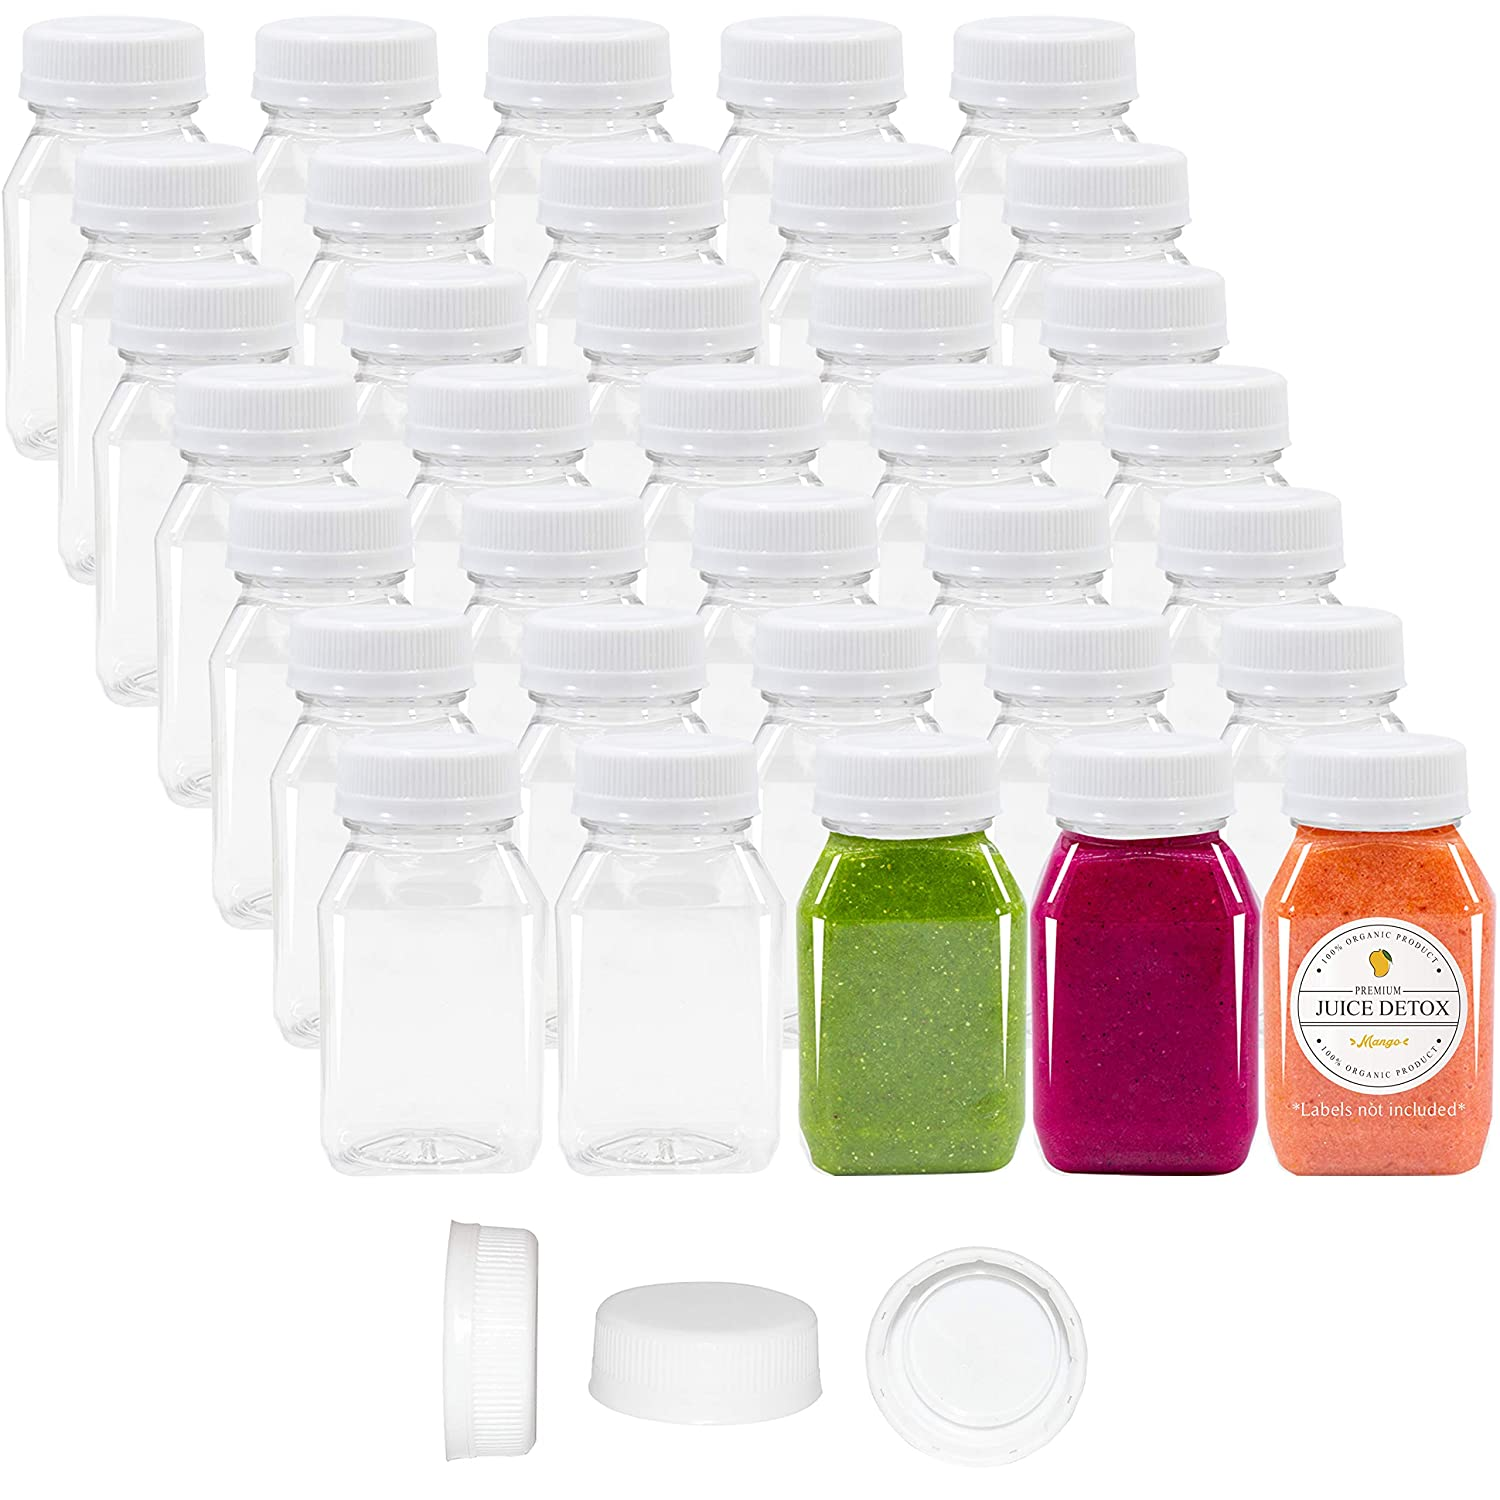 4 oz Empty Plastic Juice Bottles with Lids 98 Bulk Pack Small Clear Milk Drink Syrup Kids Size Containers Tamper Proof Caps Wholesale